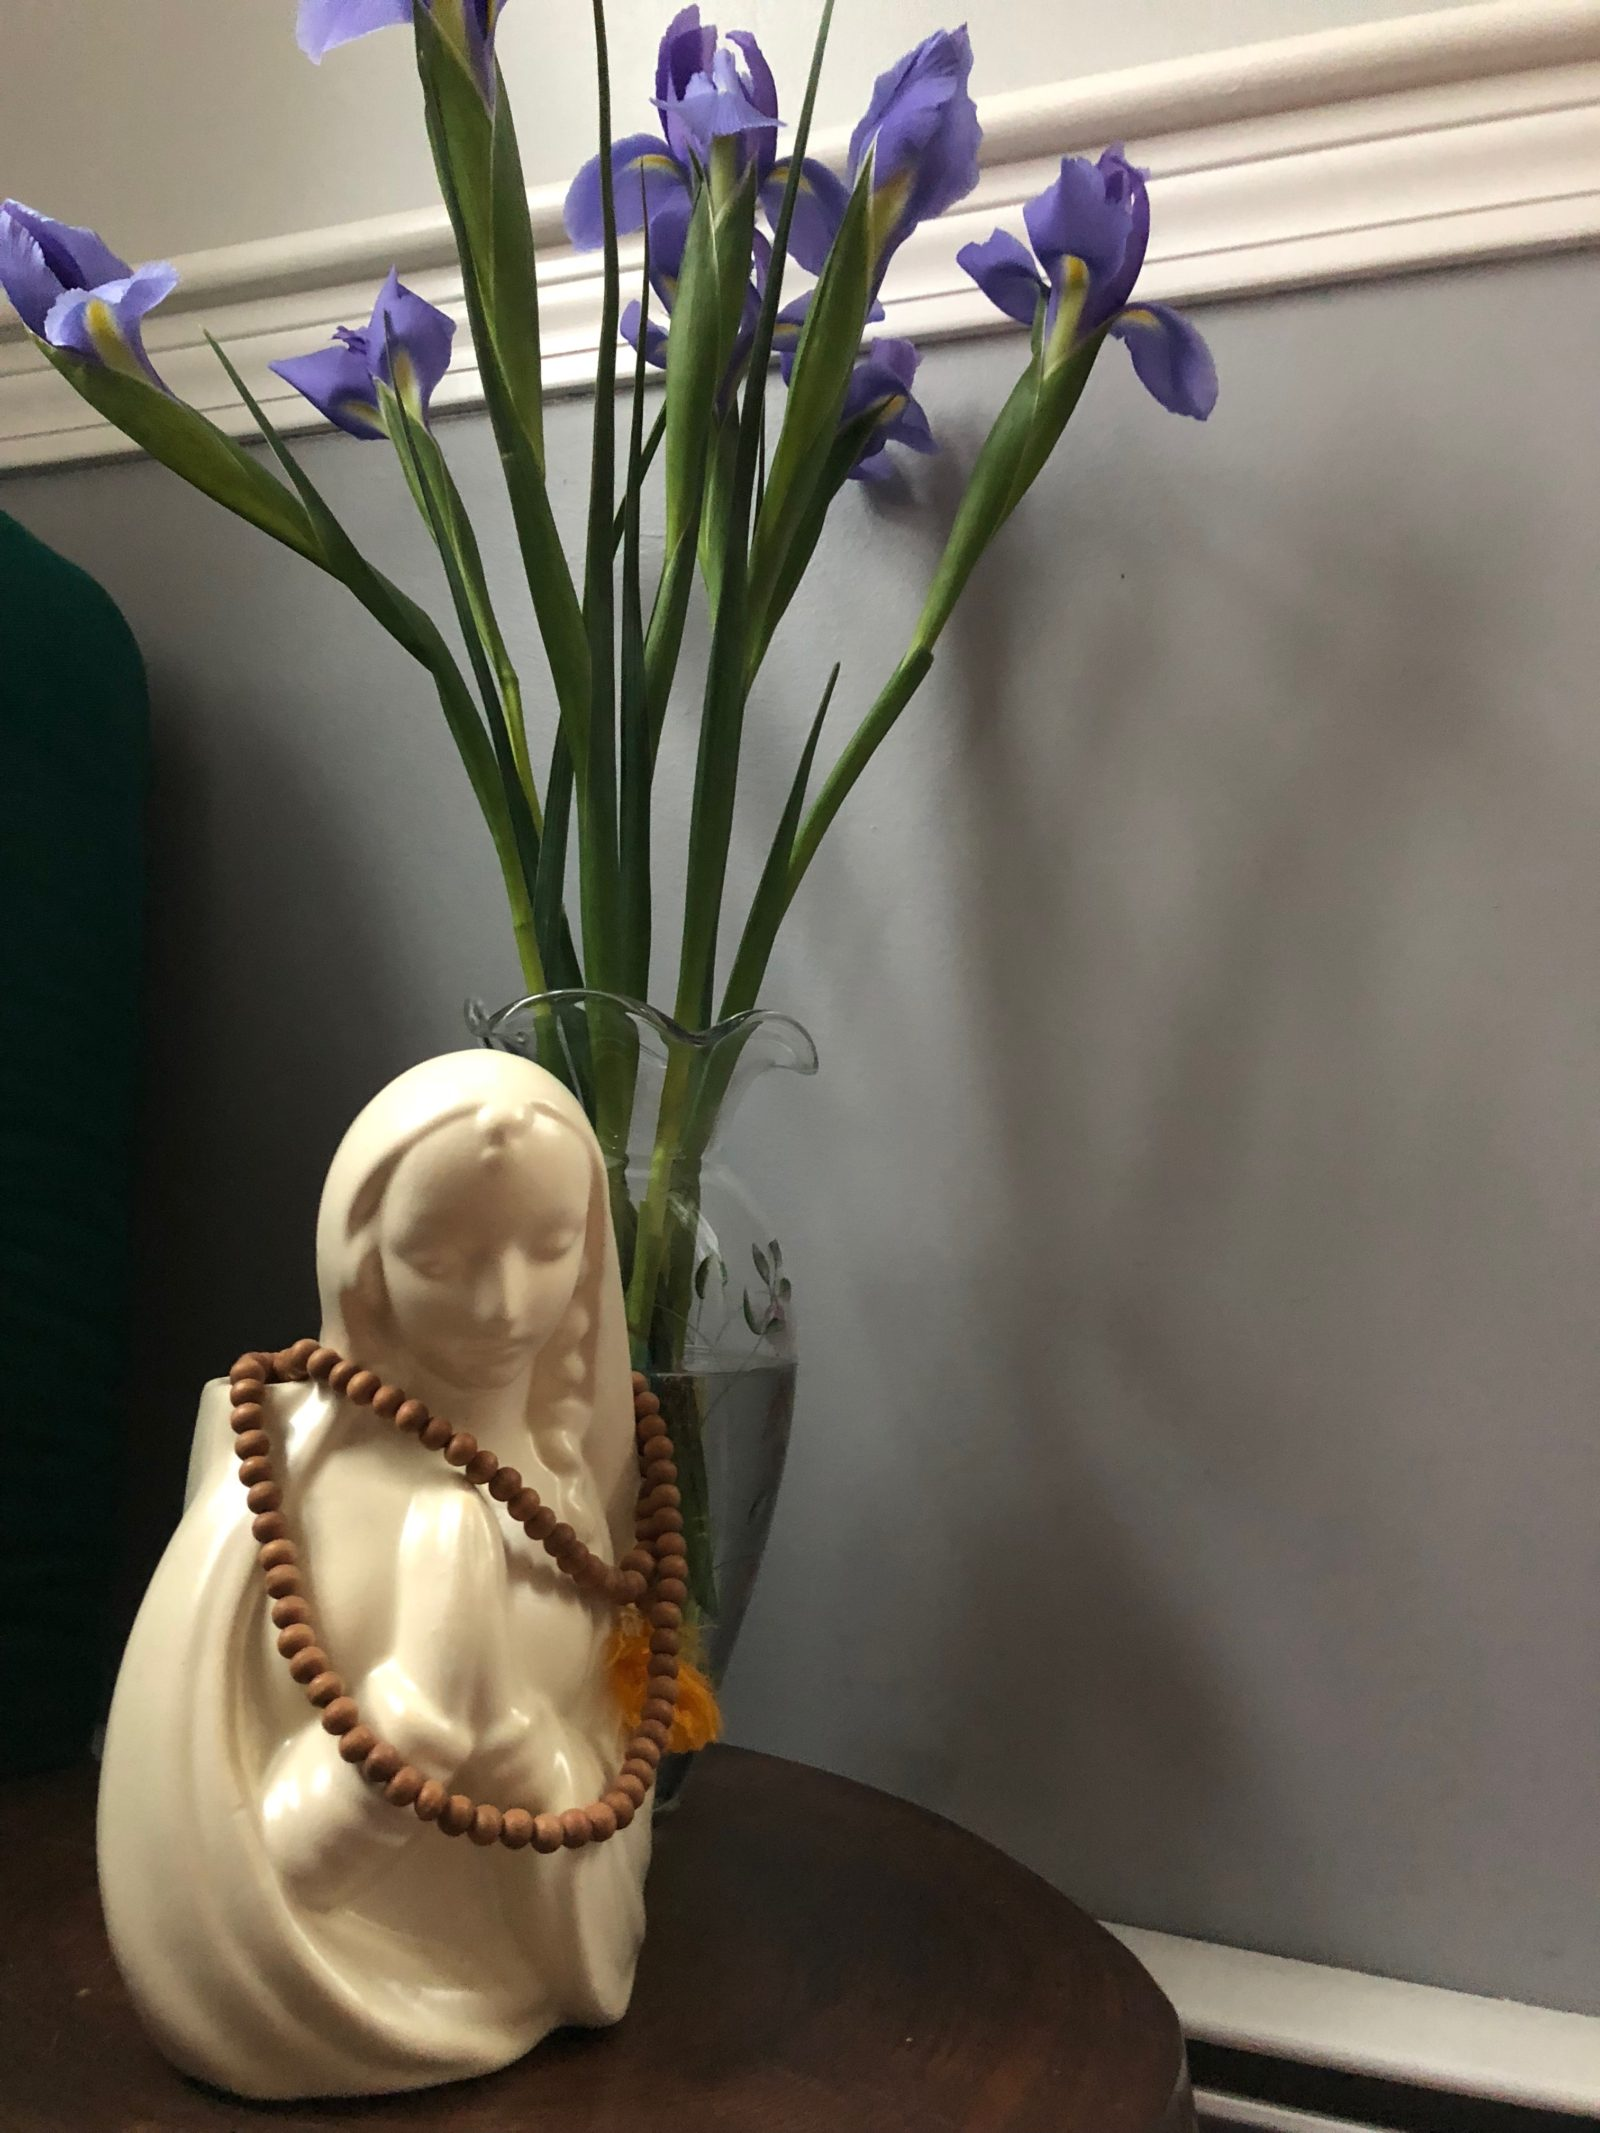 Mother Mary, iris flowers, prayer hands, prayer beads